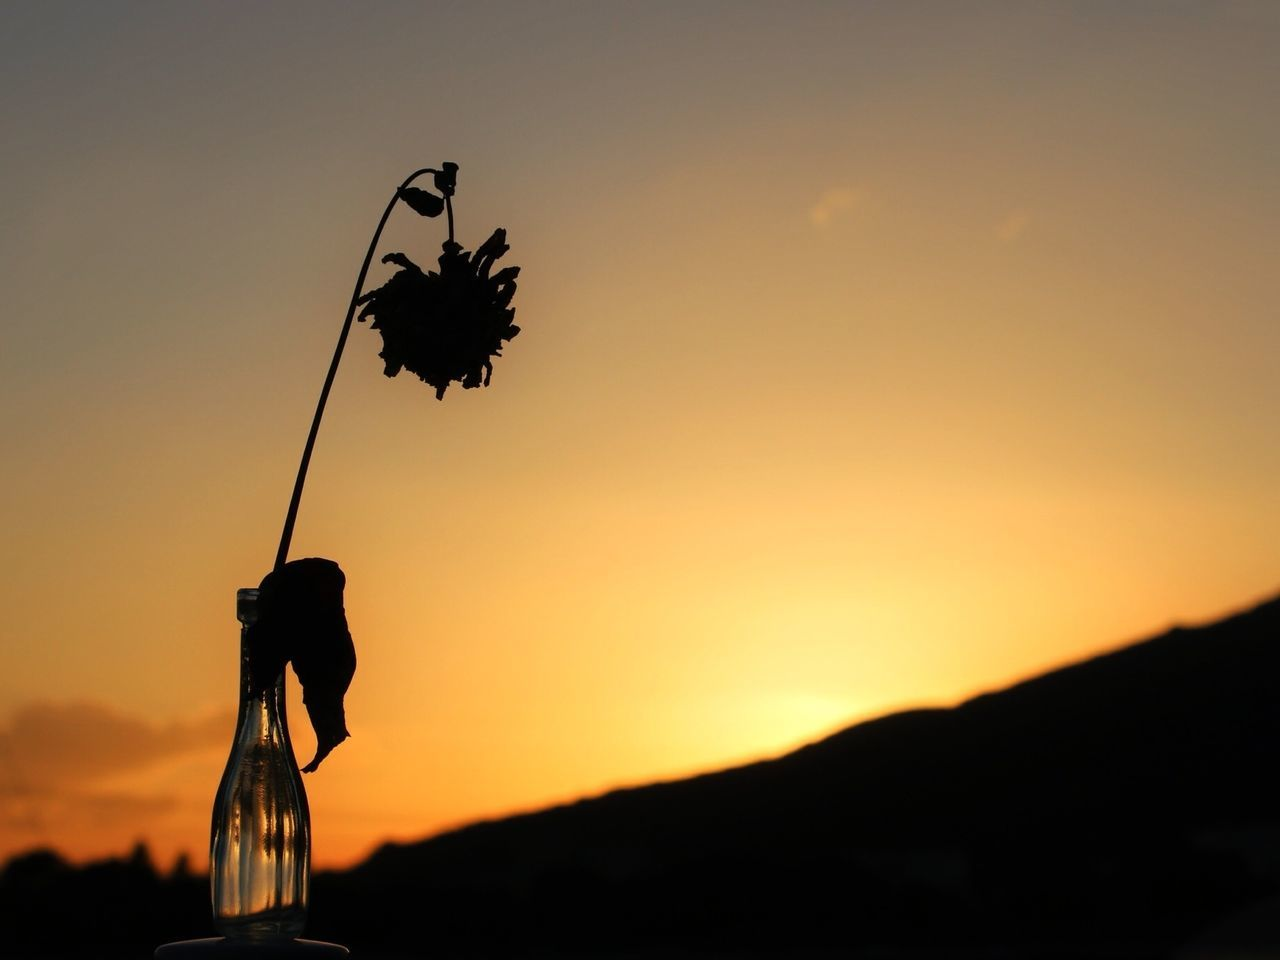 Dead plant in vase at sunset